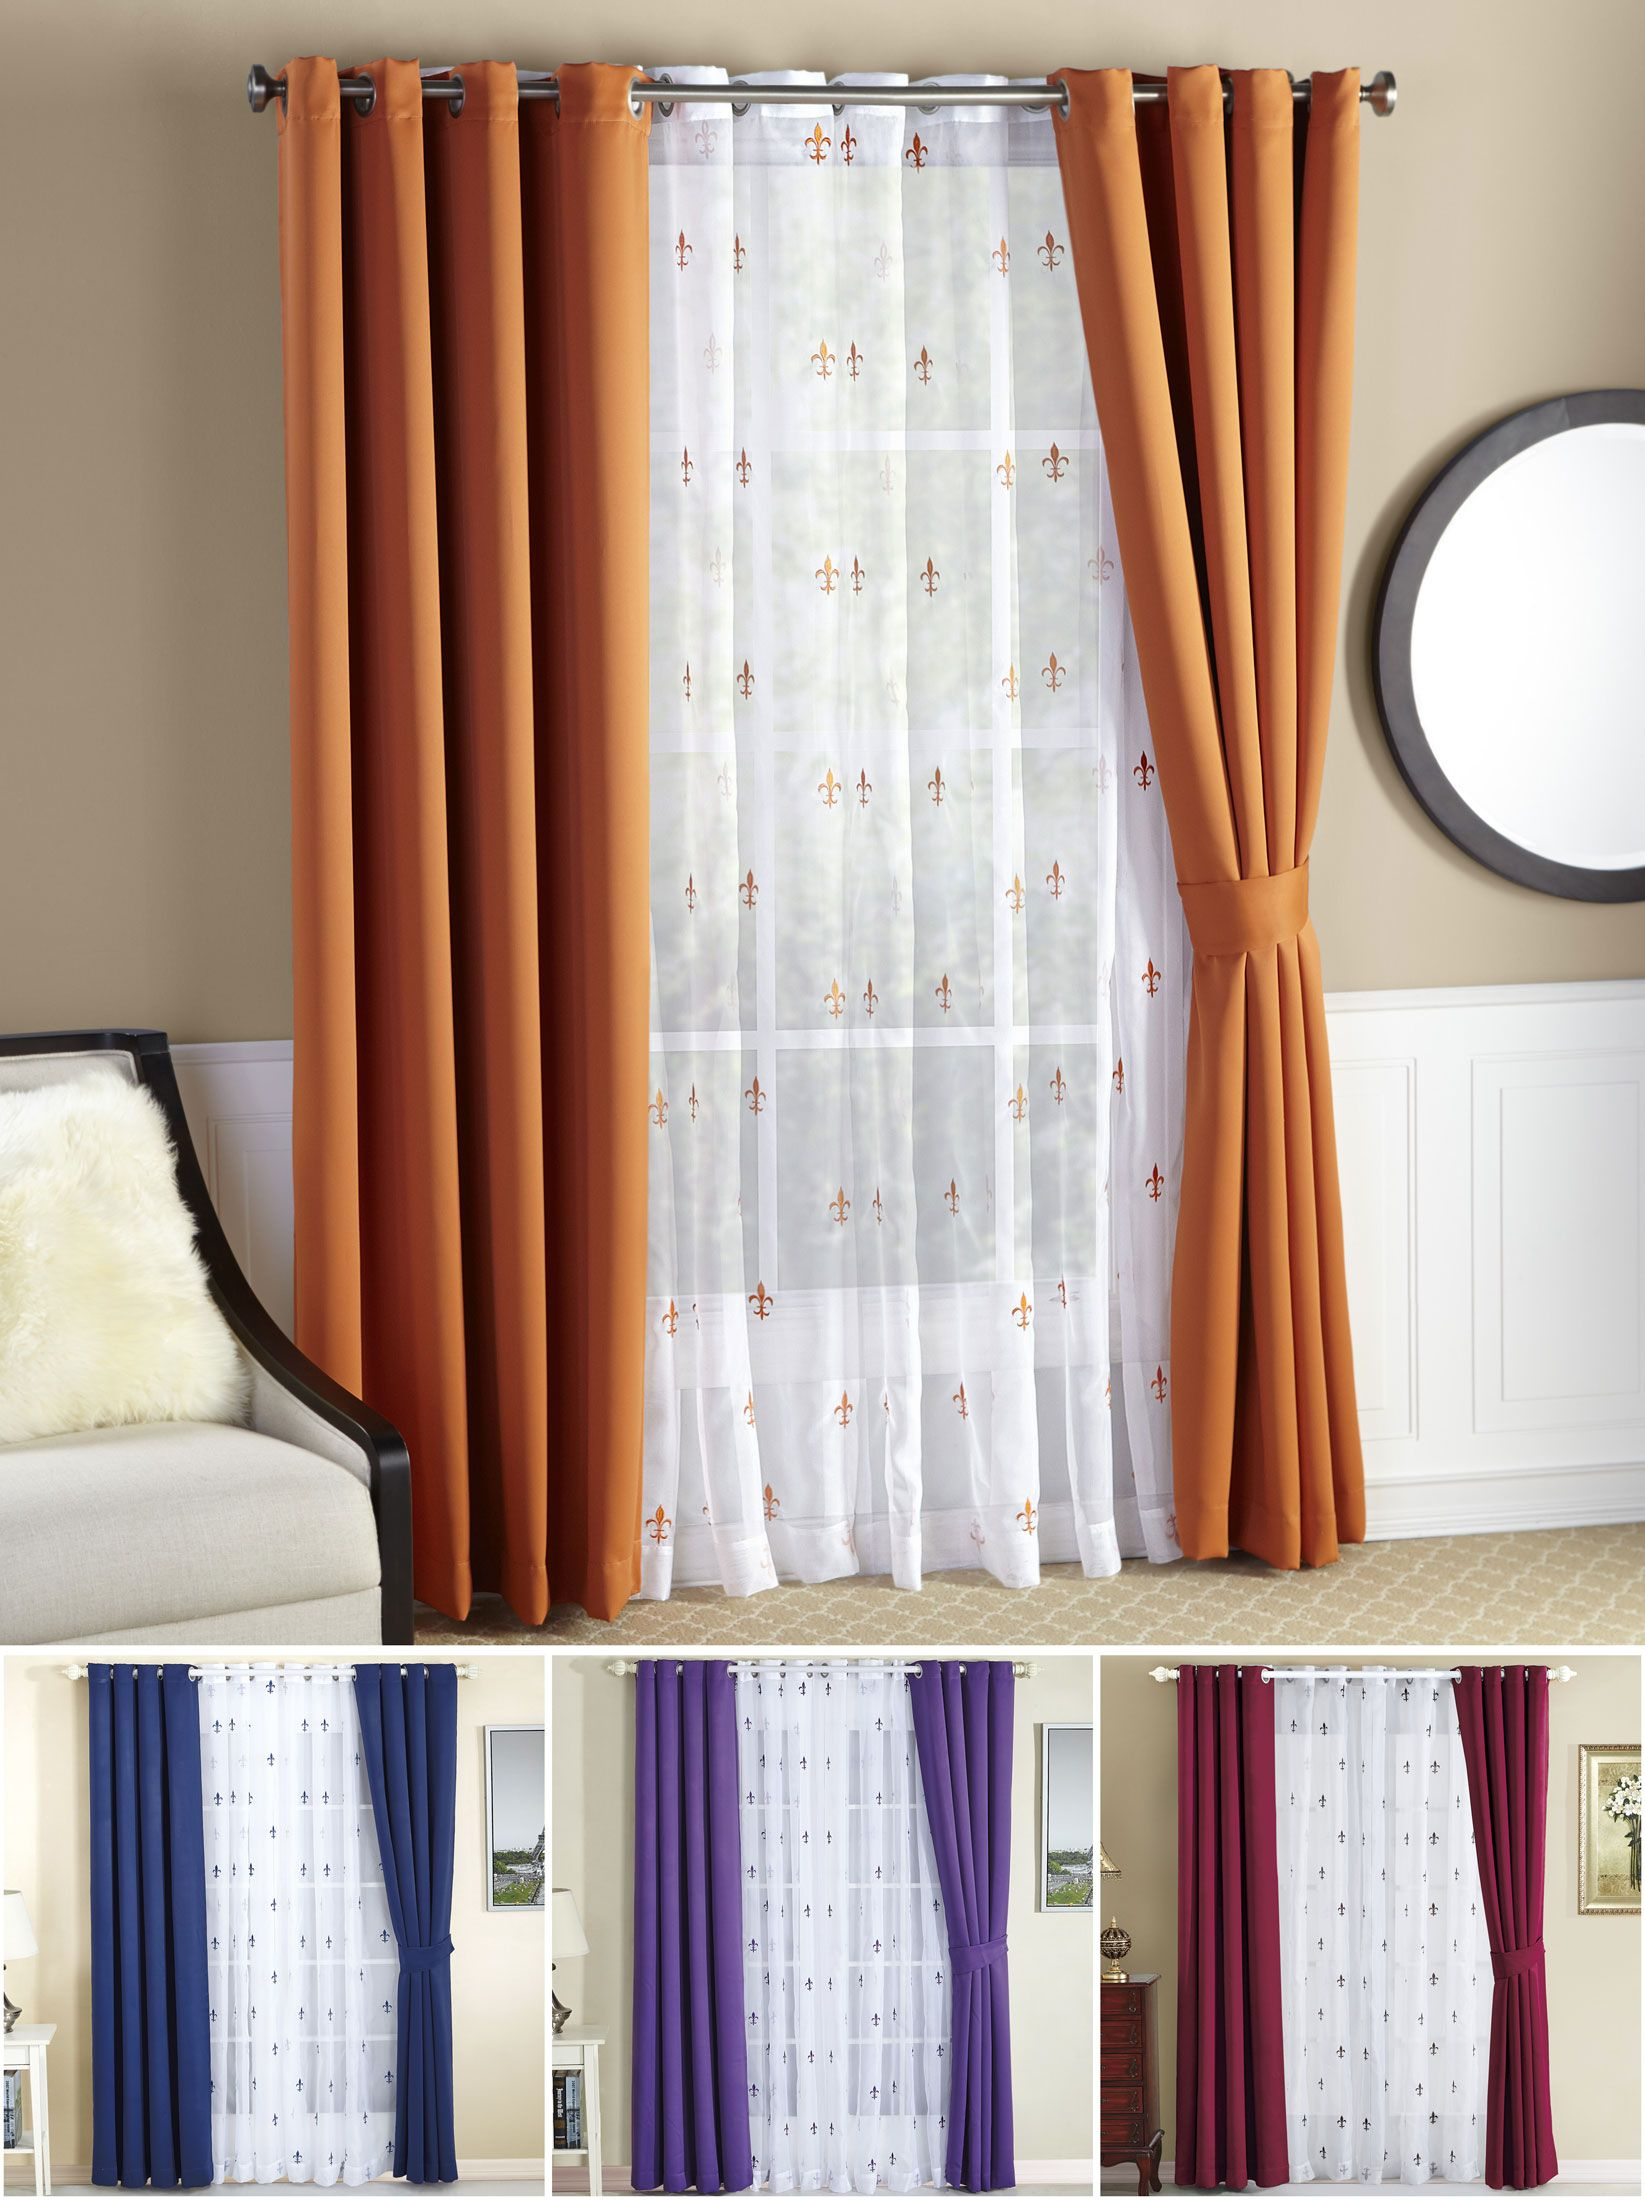 hot for sale custom at manufacturers and com suppliers hotel curtain showroom curtains alibaba width